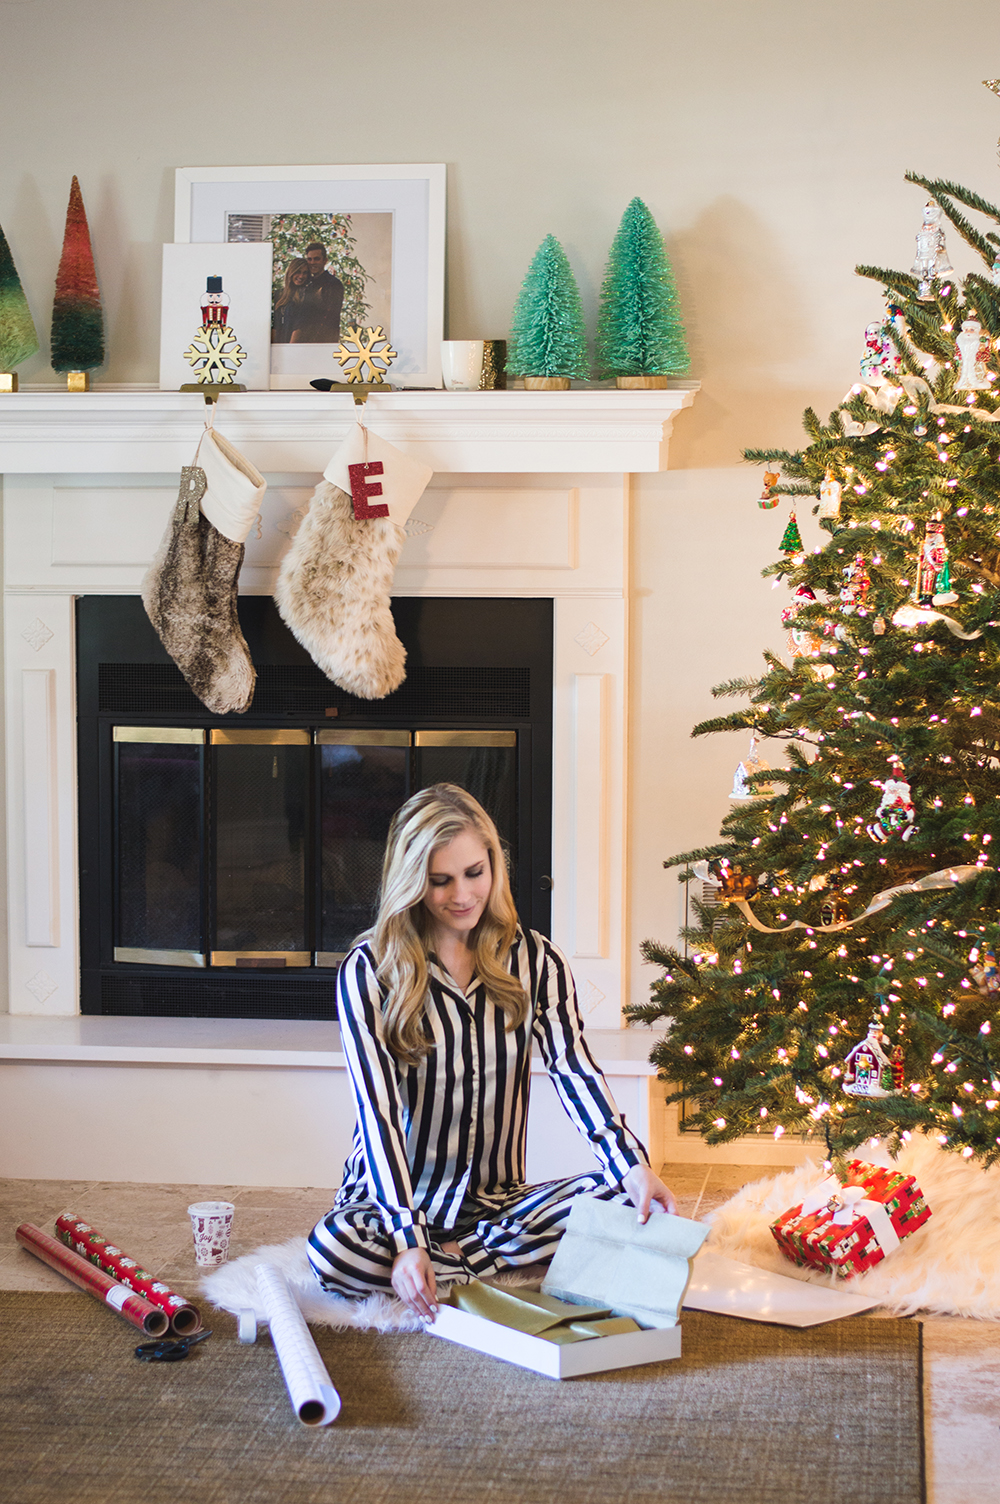 styelled-blog-fashion-blogger-style-wrapping-target-paper-christmas-gift-wrap-bows-glitter-nutcracker-tree-ornaments-stockings-pajamas-boohoo-tutorial-diy-02